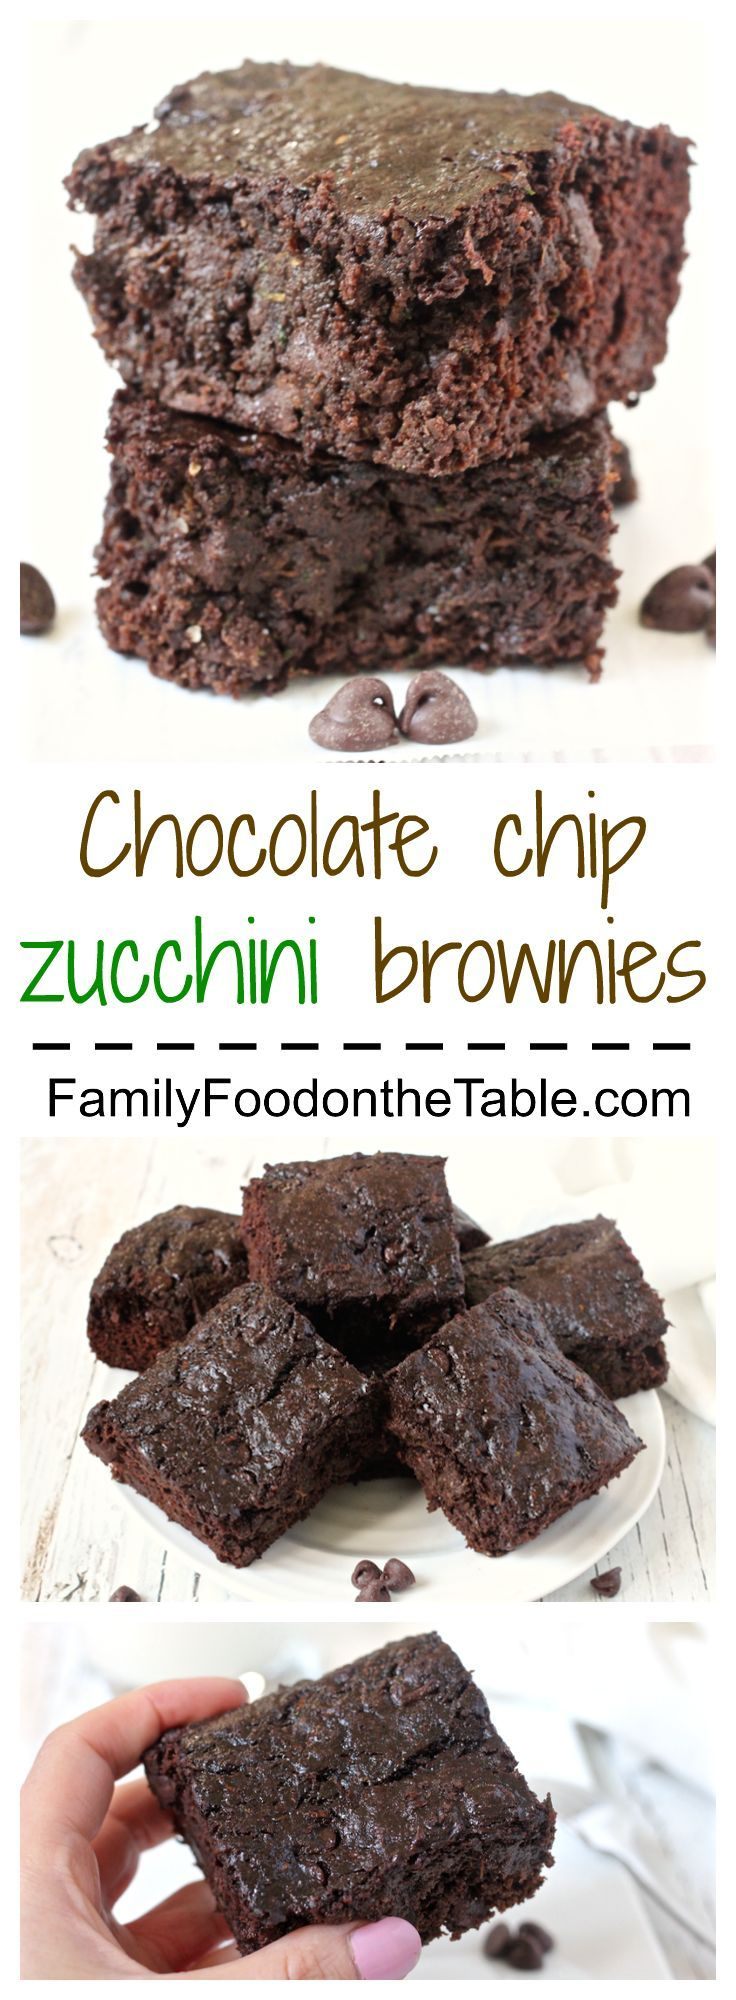 Chocolate chip zucchini brownies - decadent, delicious and secretly healthy! | http://FamilyFoodontheTable.com